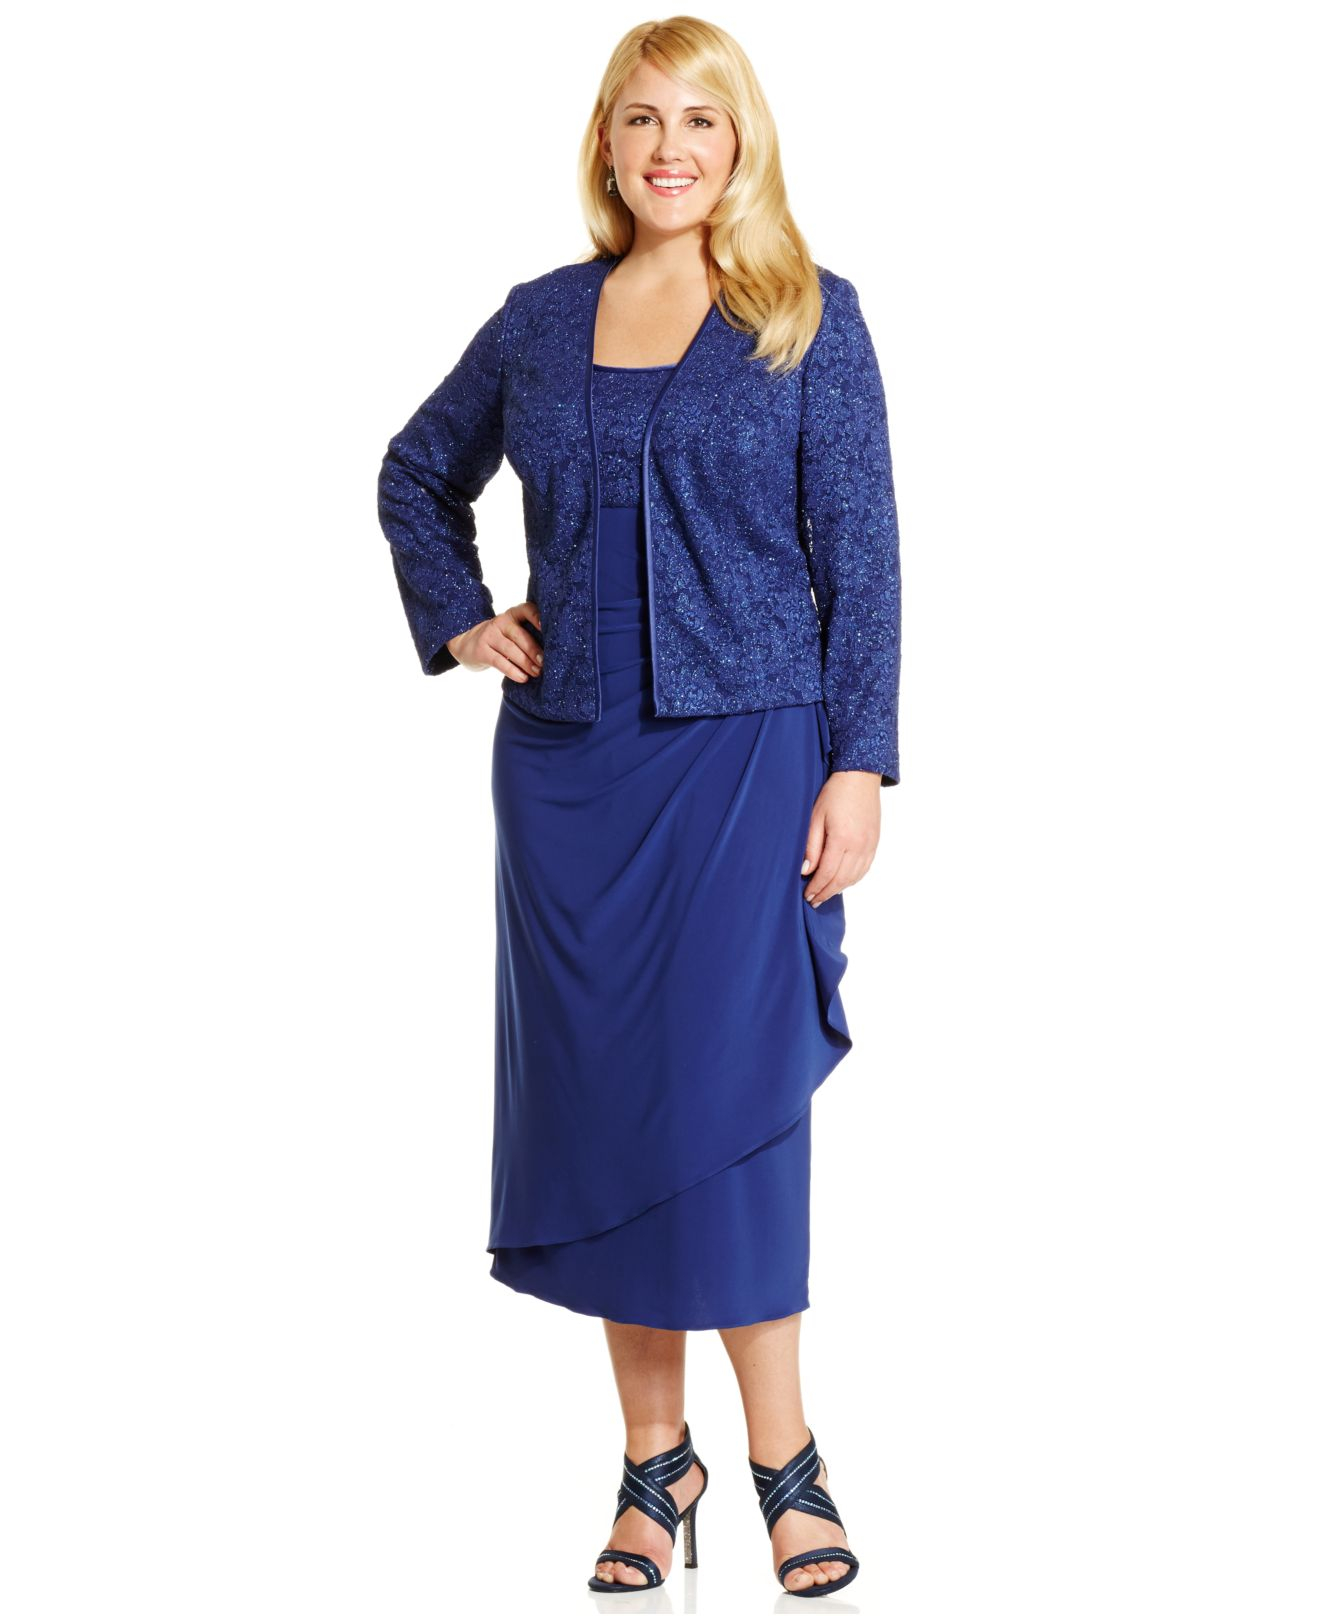 Alex evenings Plus Size Lace A-line Dress And Jacket in Blue | Lyst